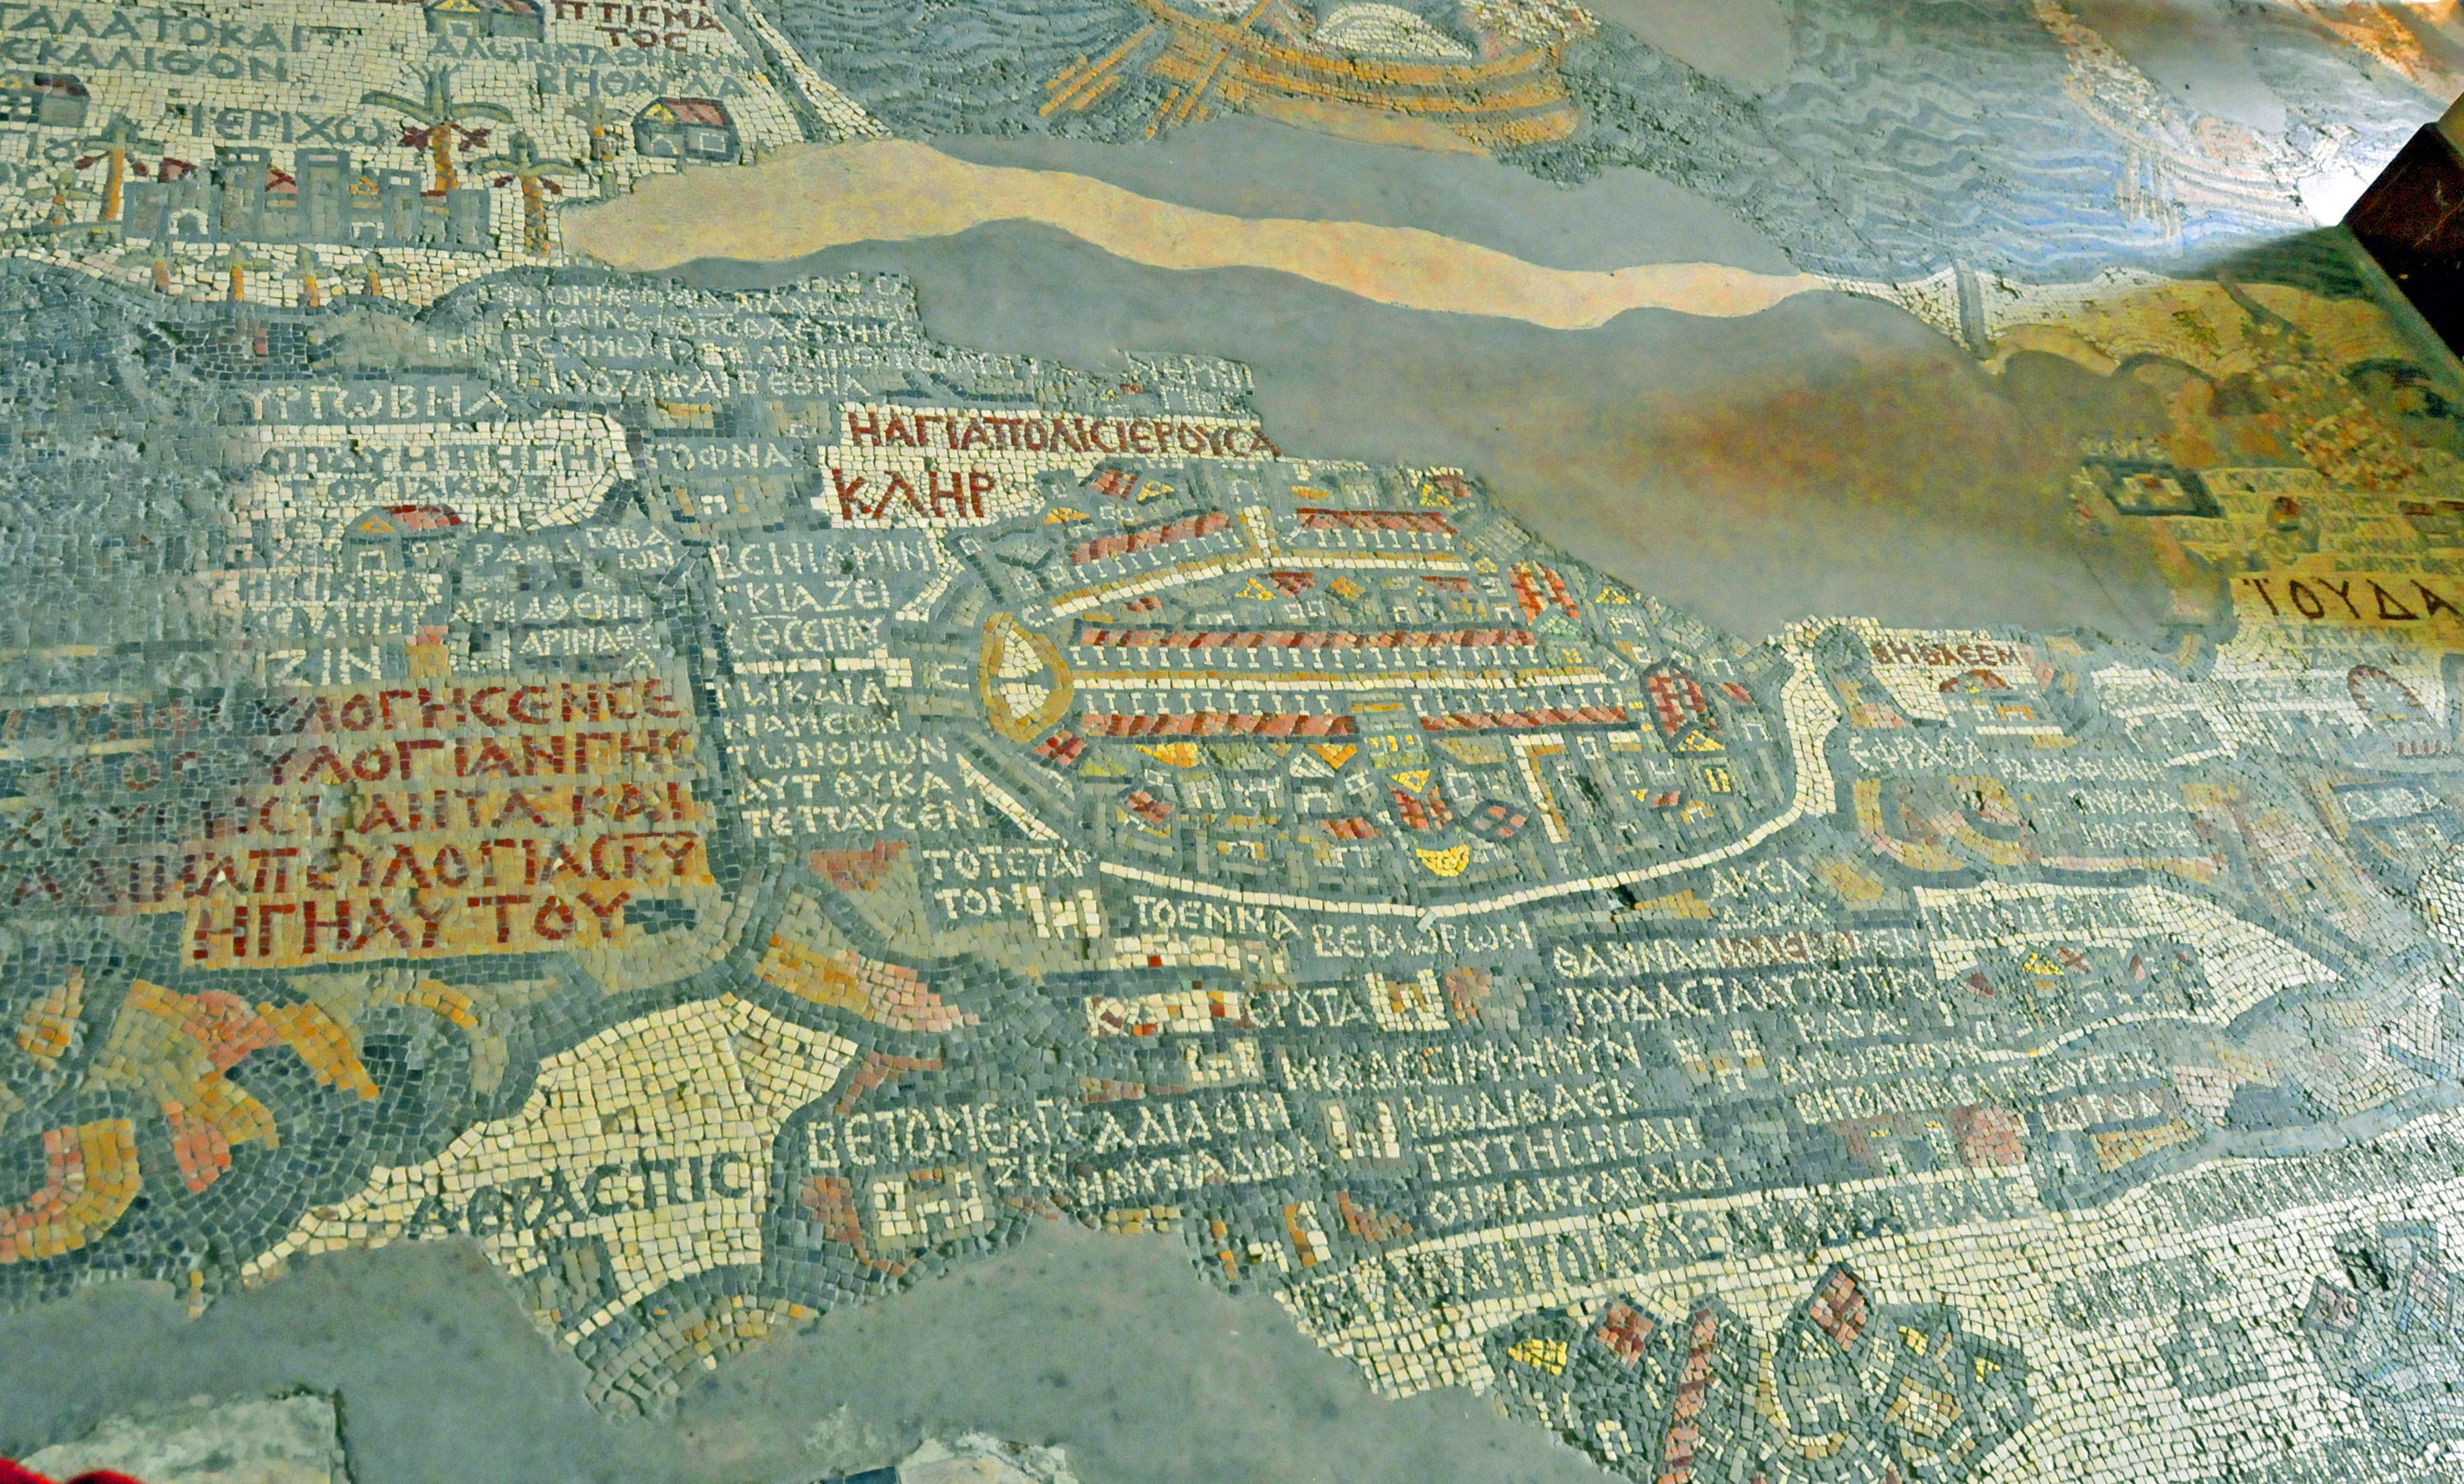 Jordanian map shows the way   Current Publishing on vienna genesis, macedonian renaissance, late antique and medieval mosaics in italy, joshua roll,